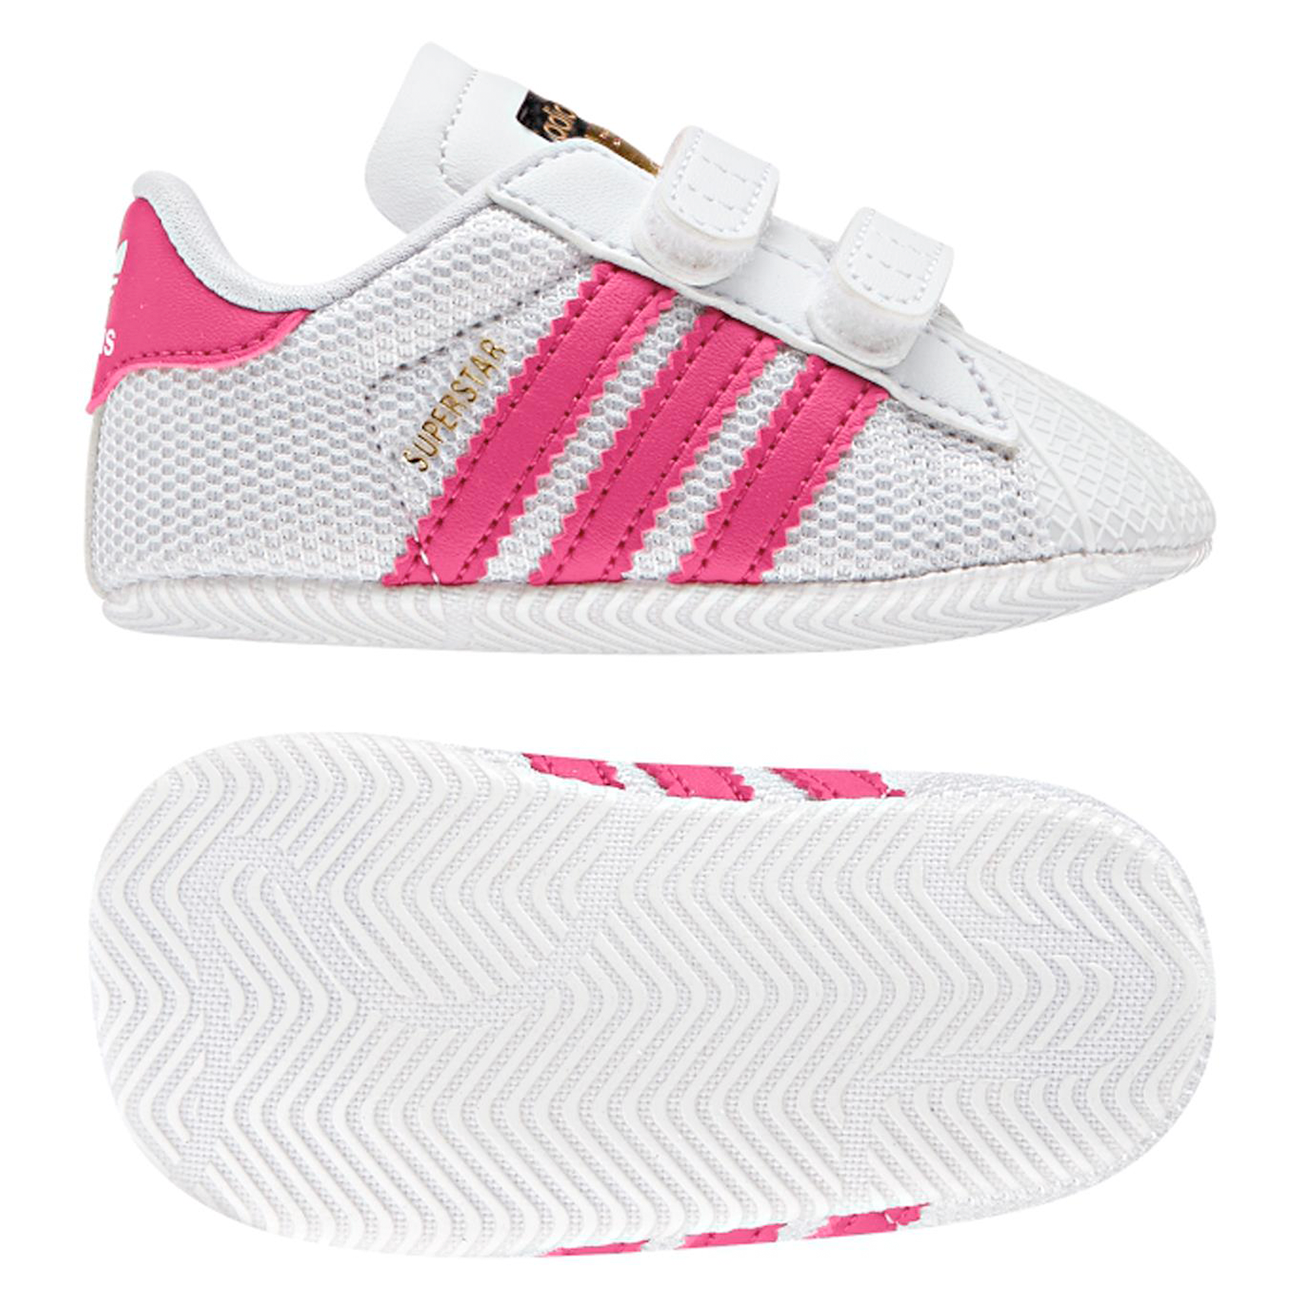 adidas Originals White and Pink Superstar Crib Trainers